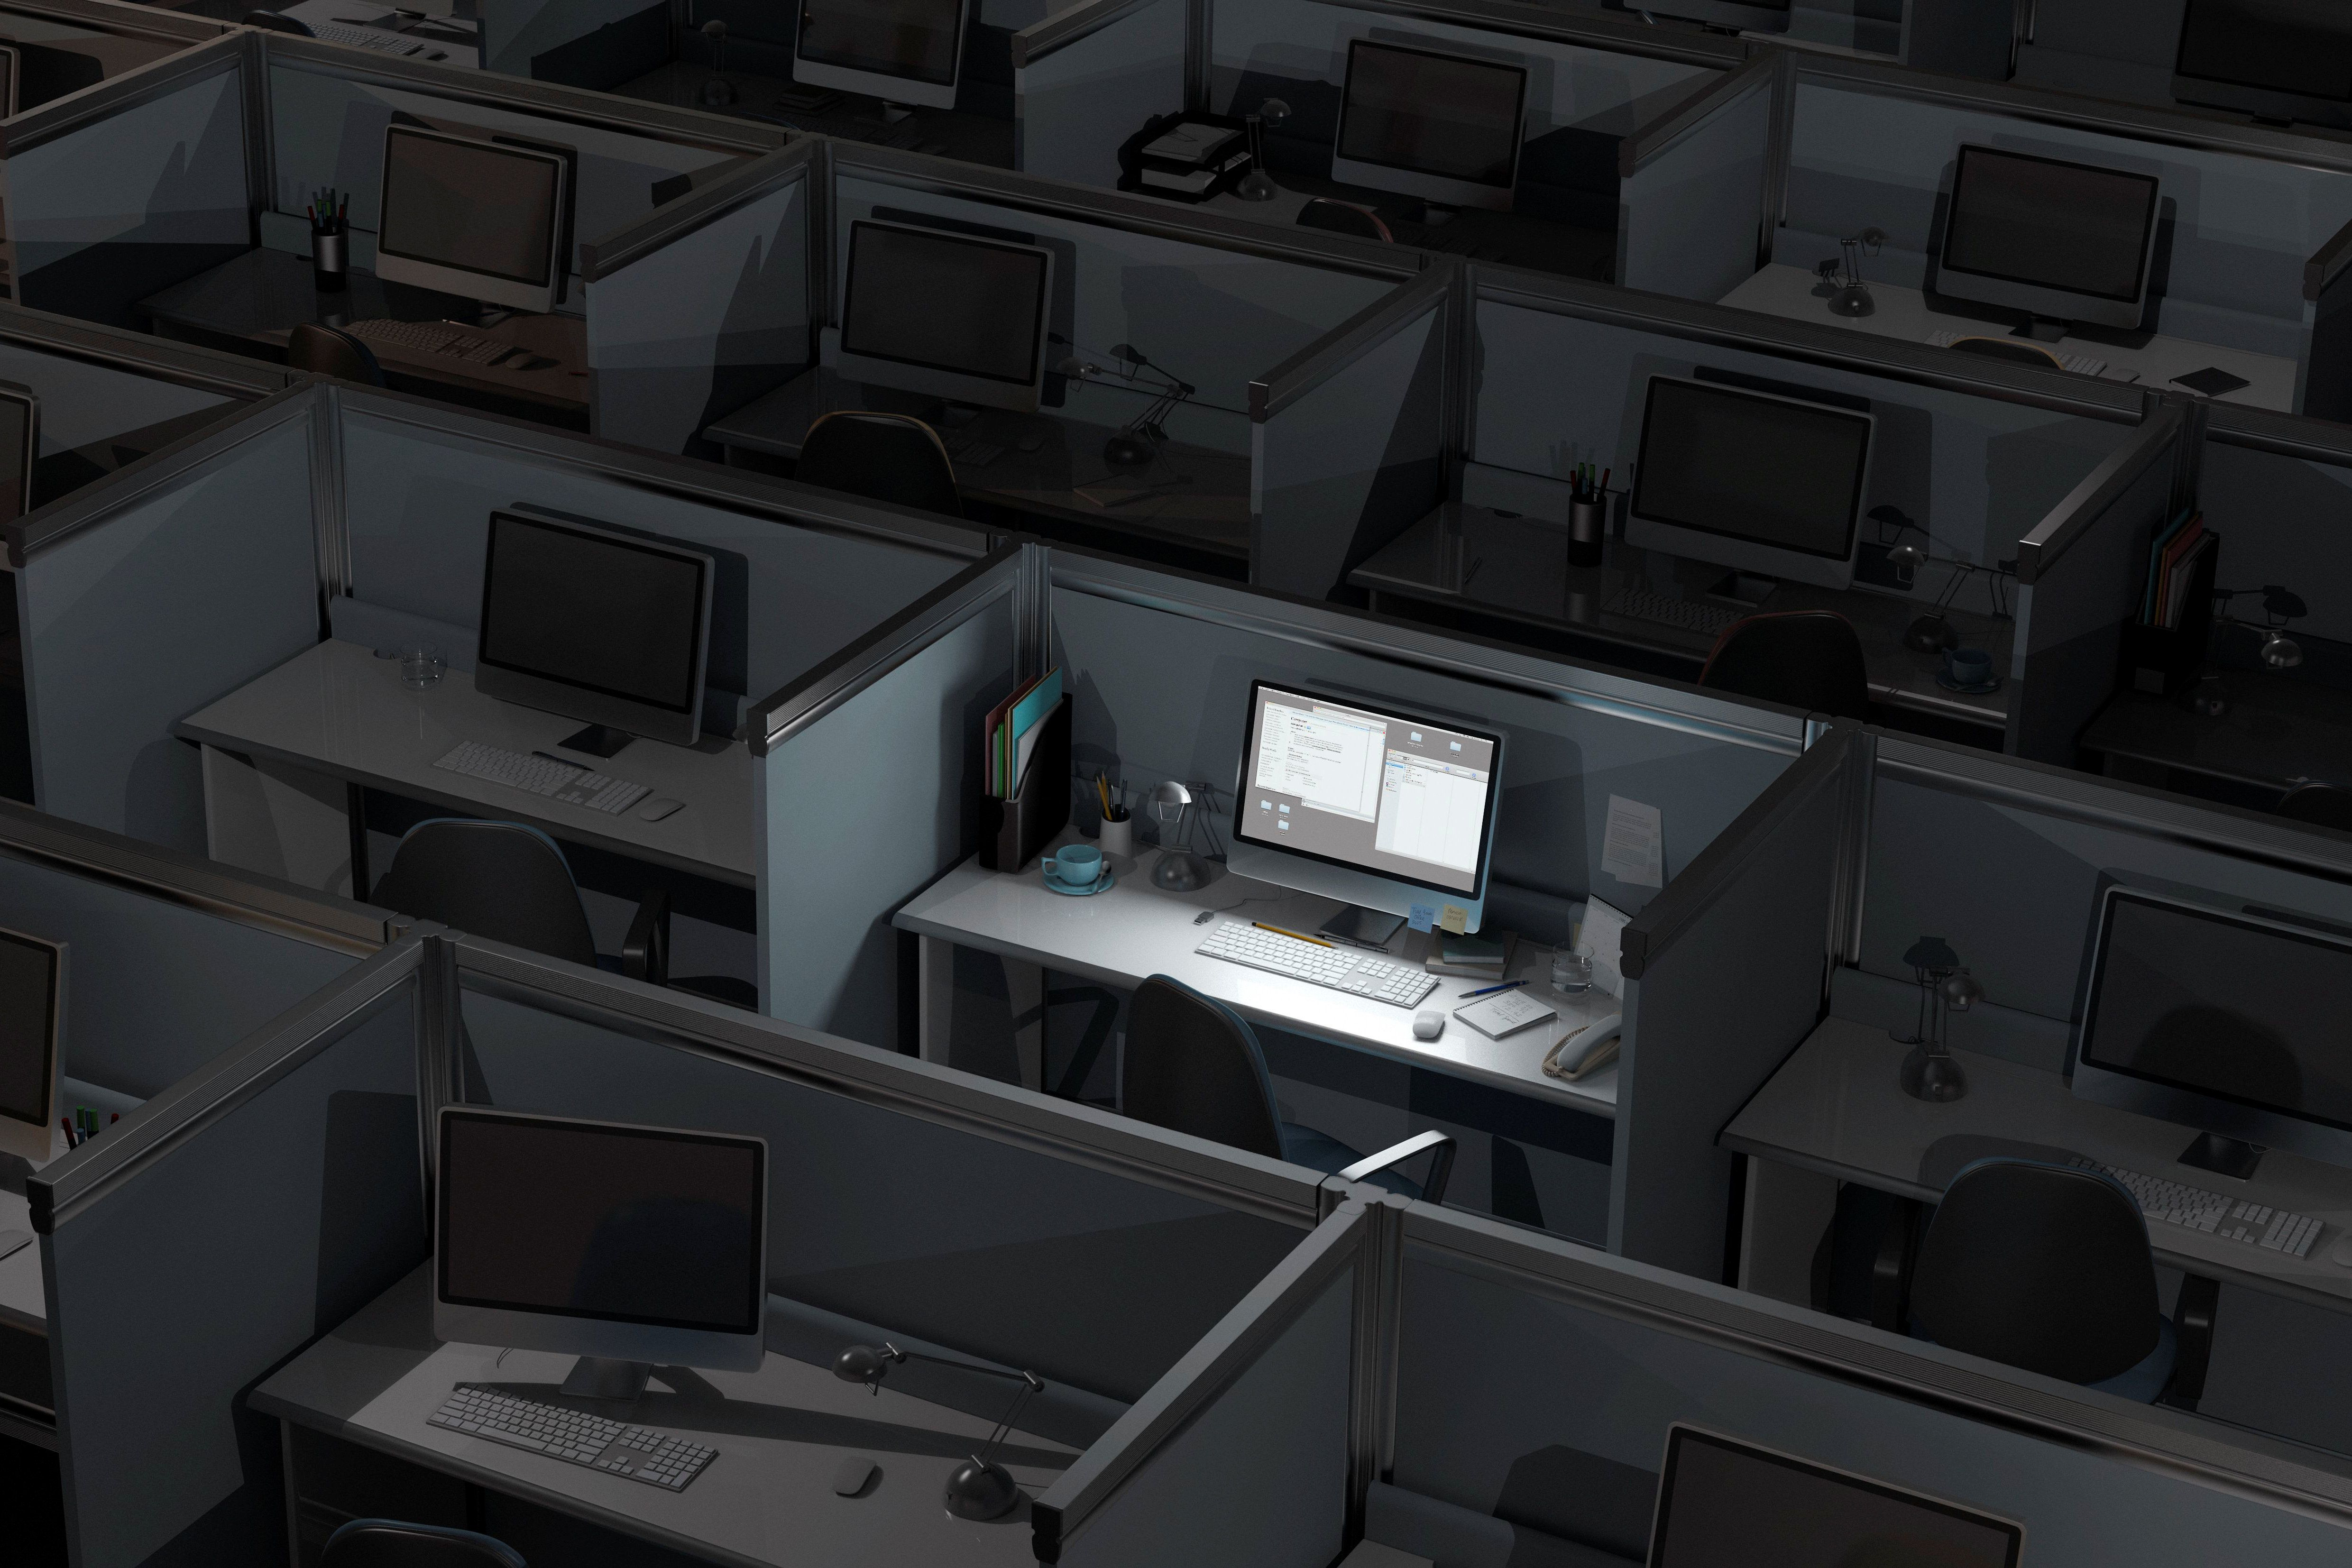 Should You Shut Down a Computer When It's Not in Use?